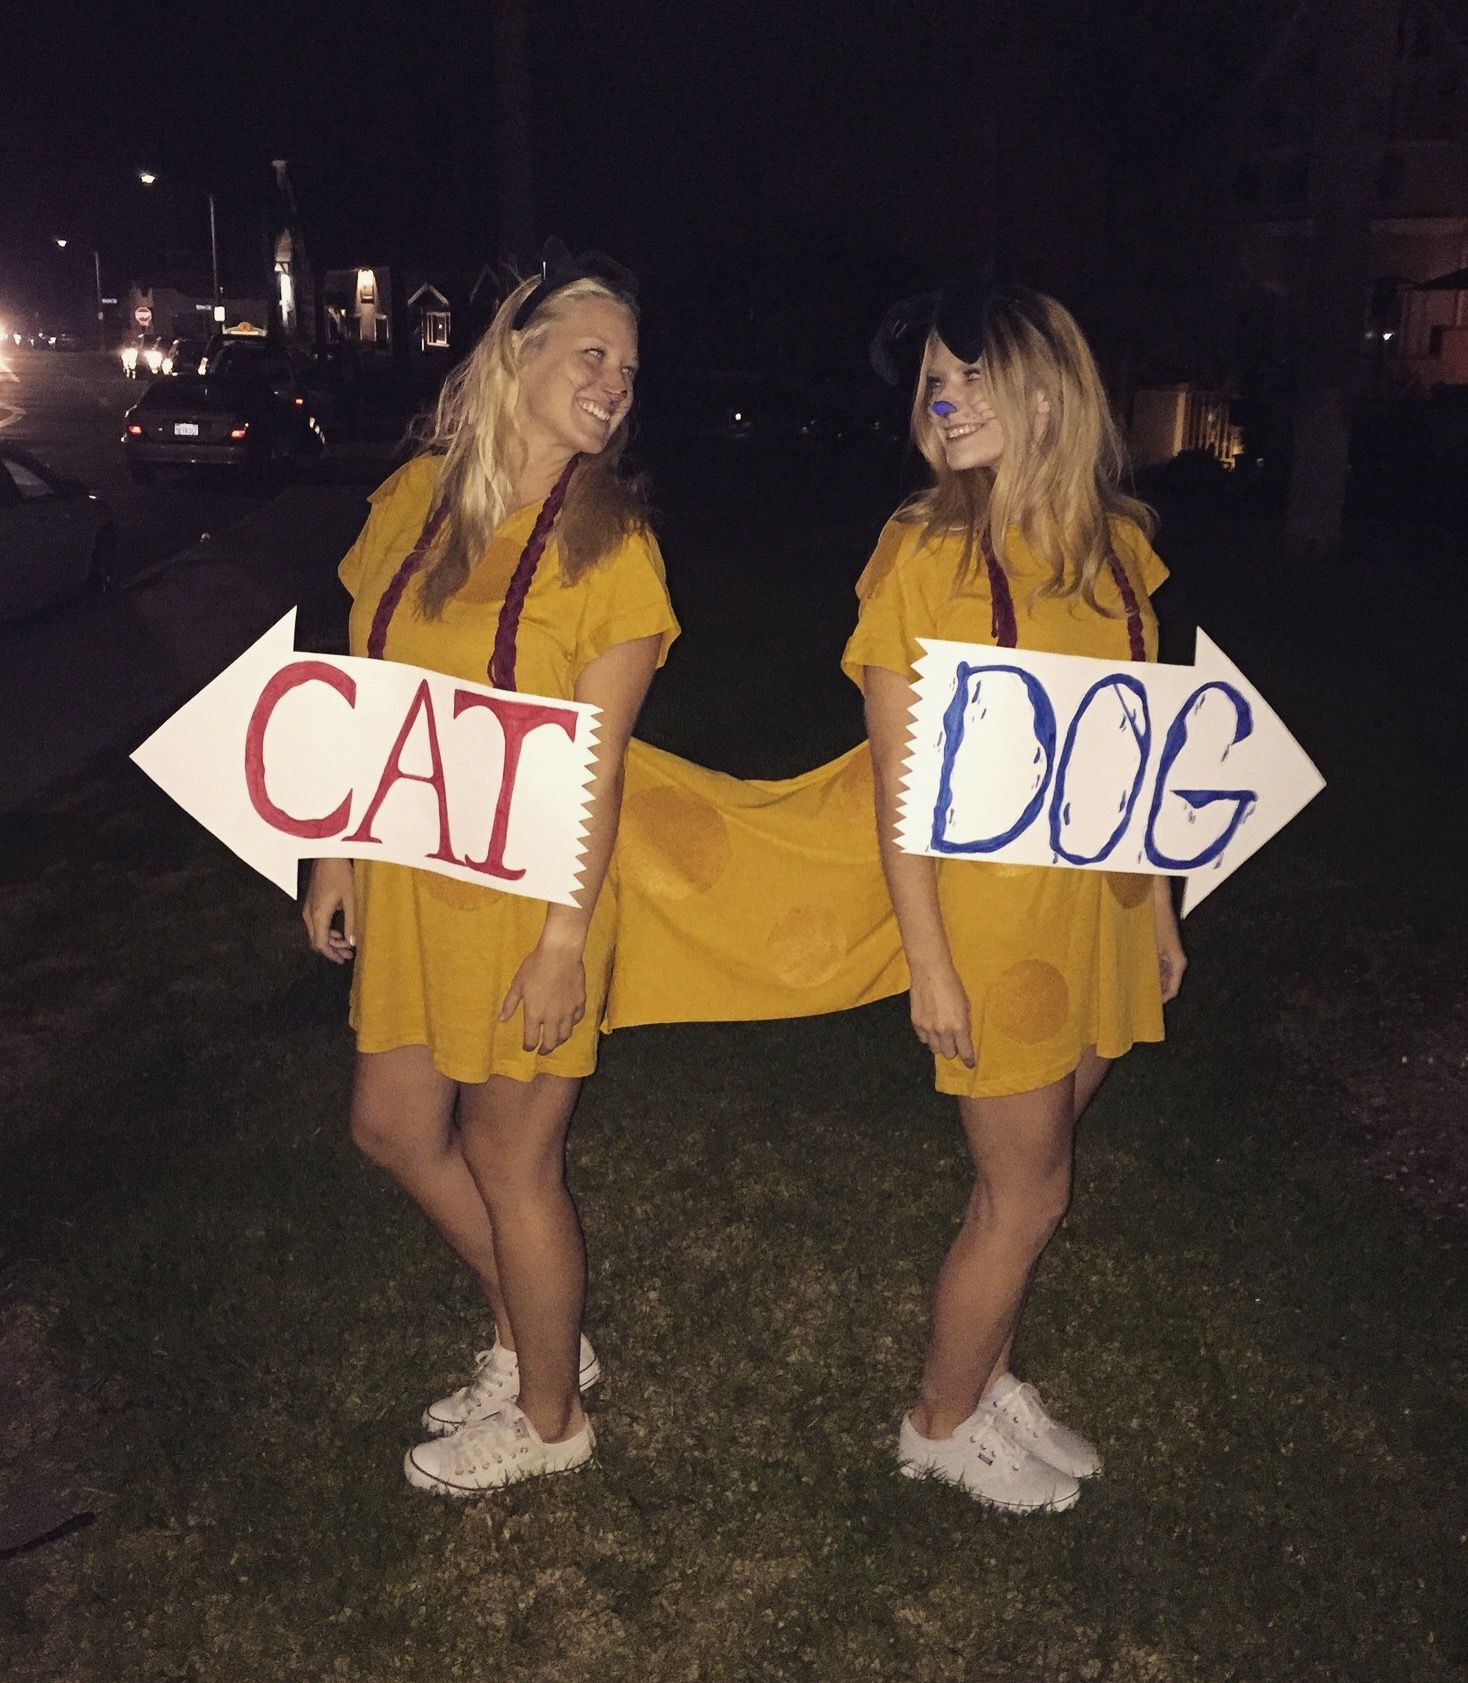 Our CatDog costume!